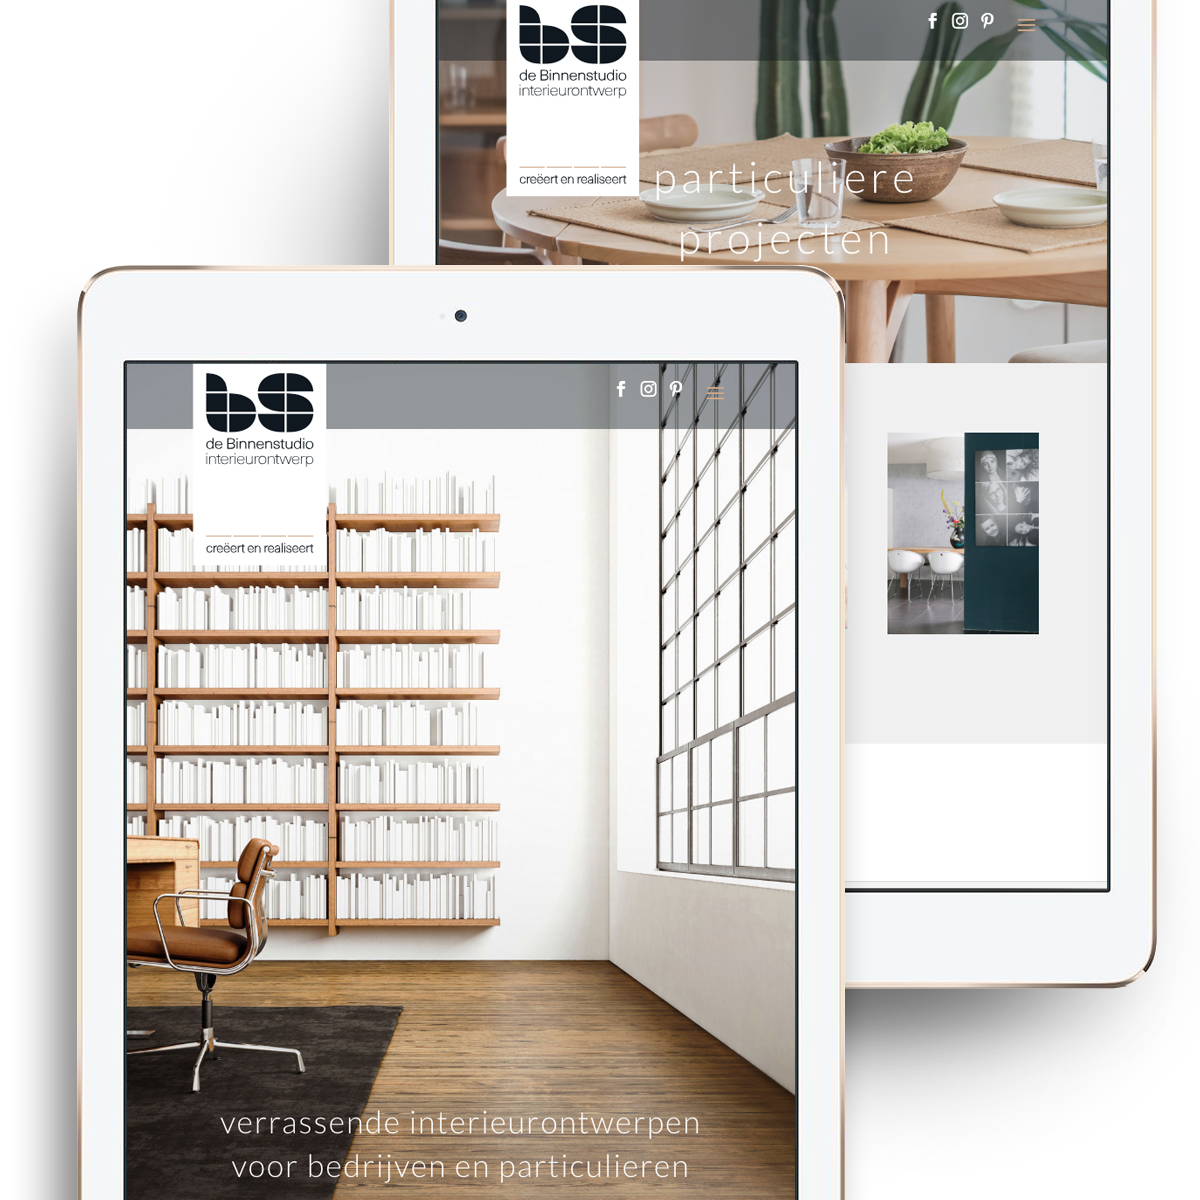 Studio Chris10 - Website voor De Binnenstudio